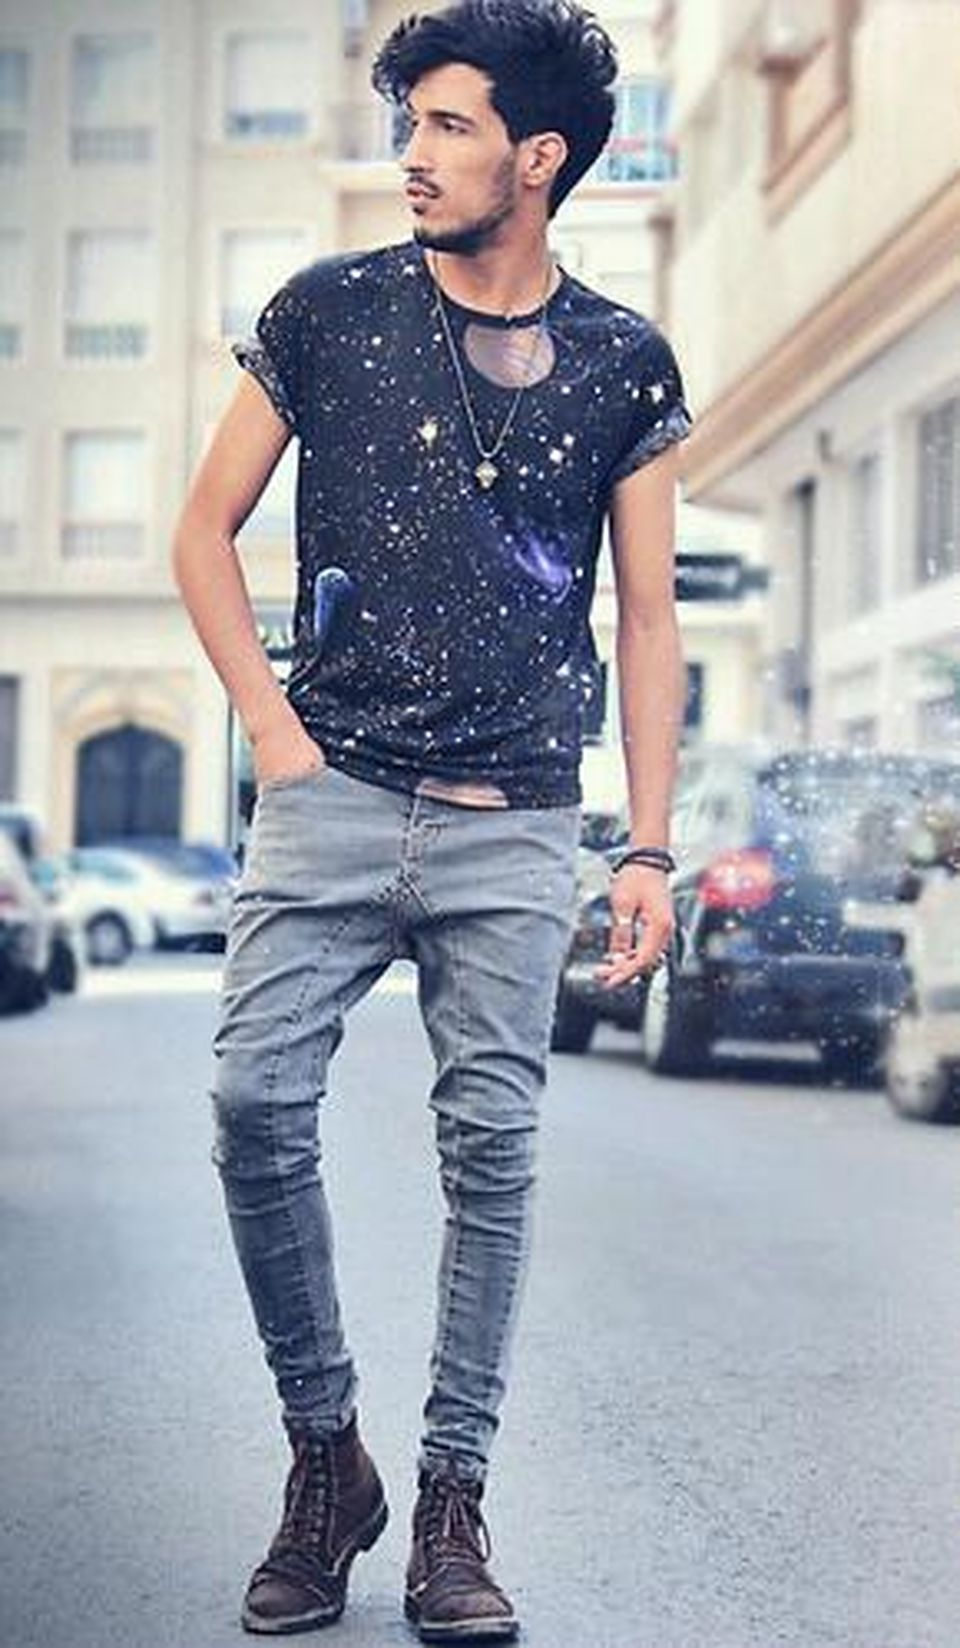 Casual Indie Mens Fashion Outfits Style 8 Fashion Best